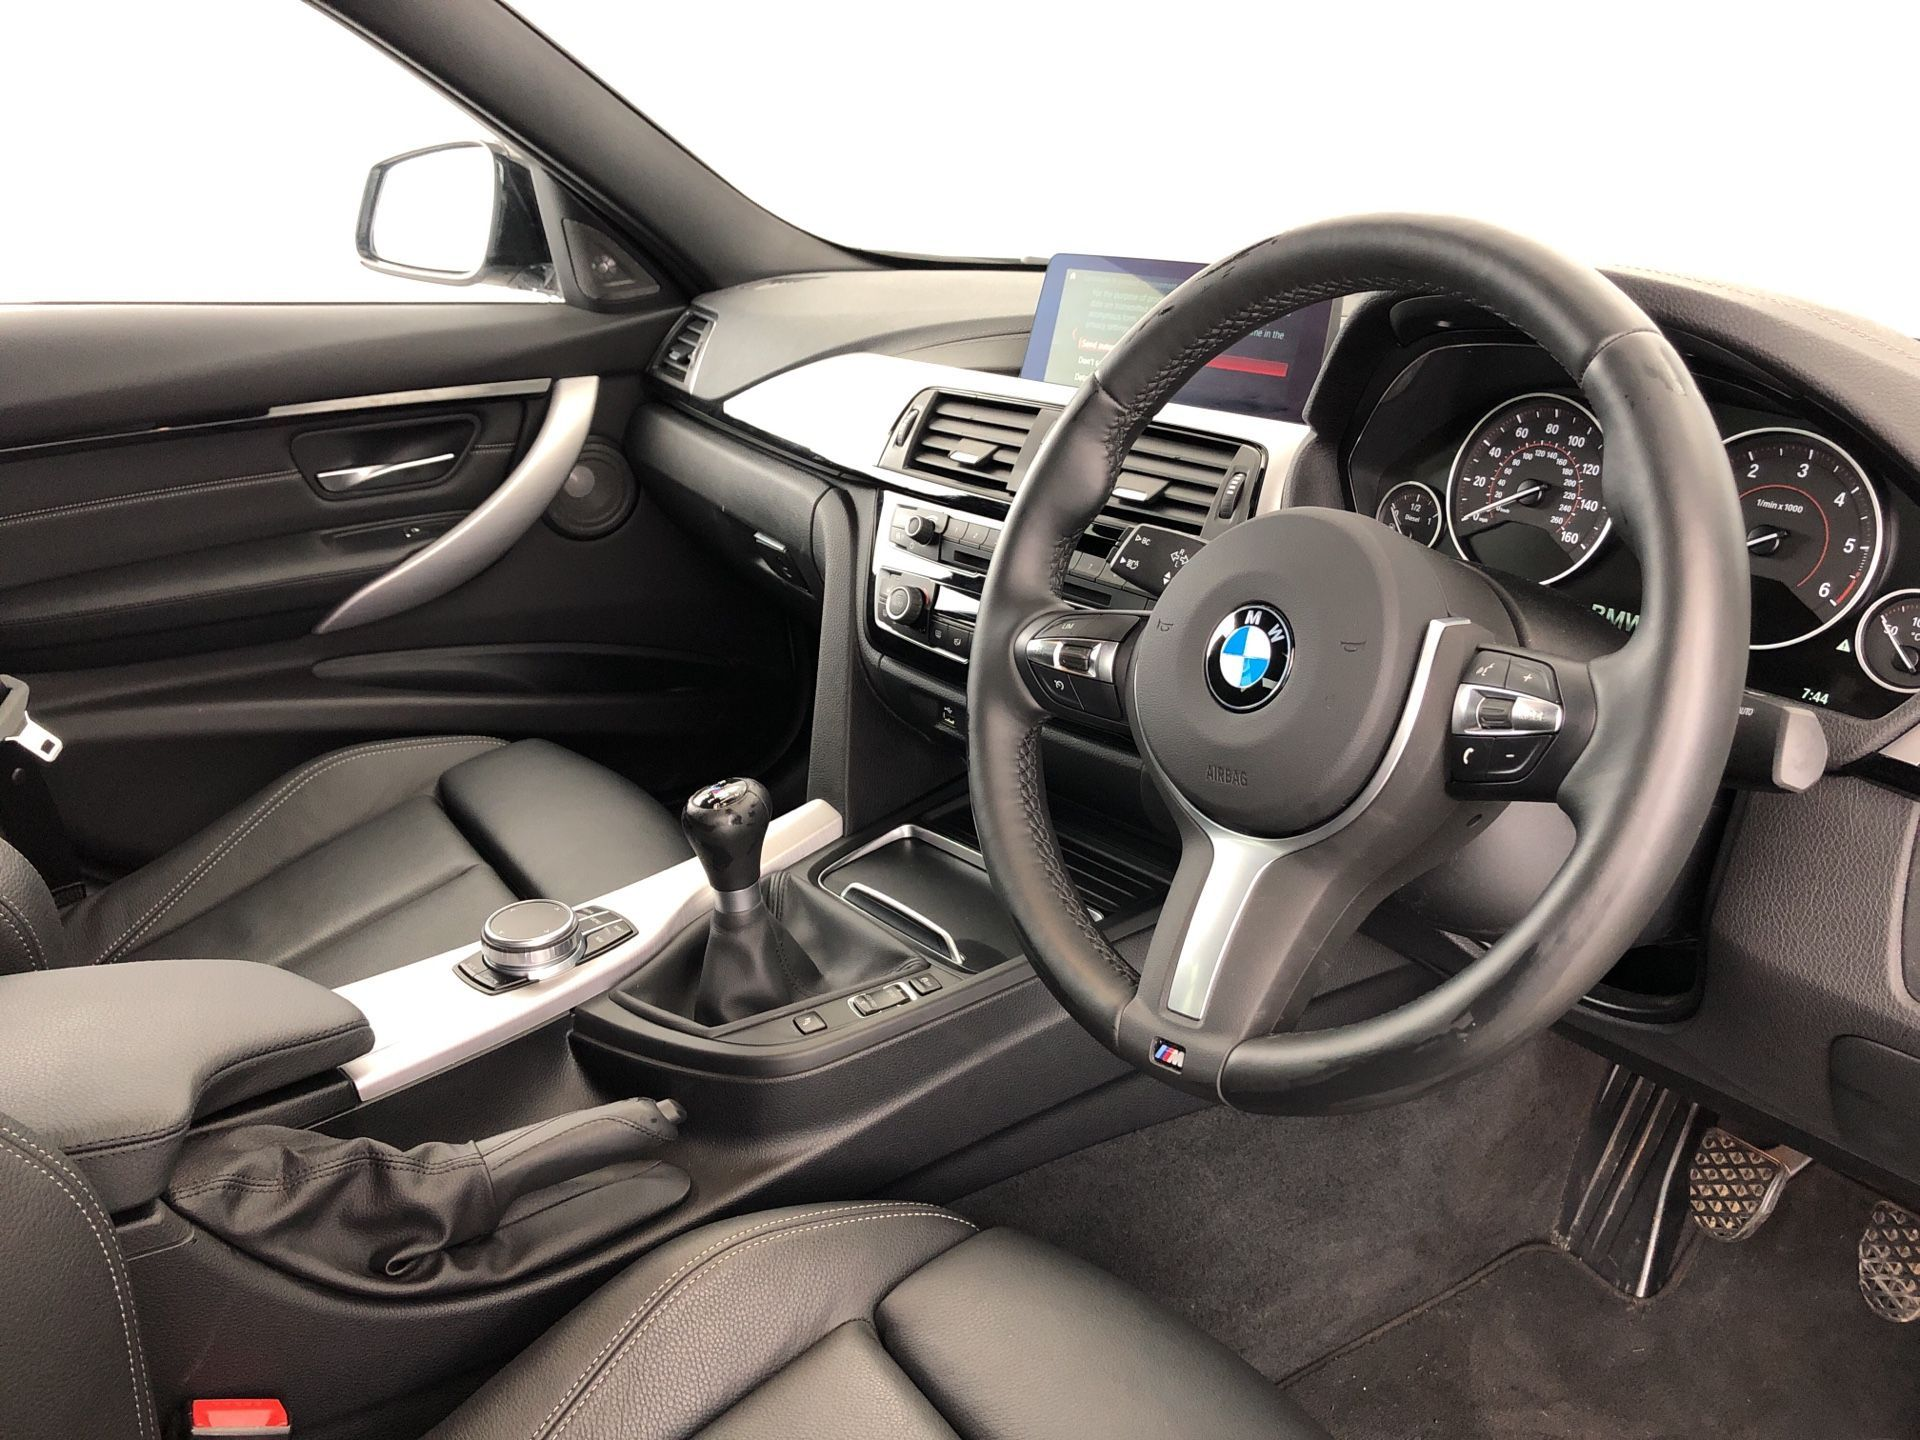 Image 4 - BMW 320d M Sport Shadow Edition Saloon (YK68BSO)